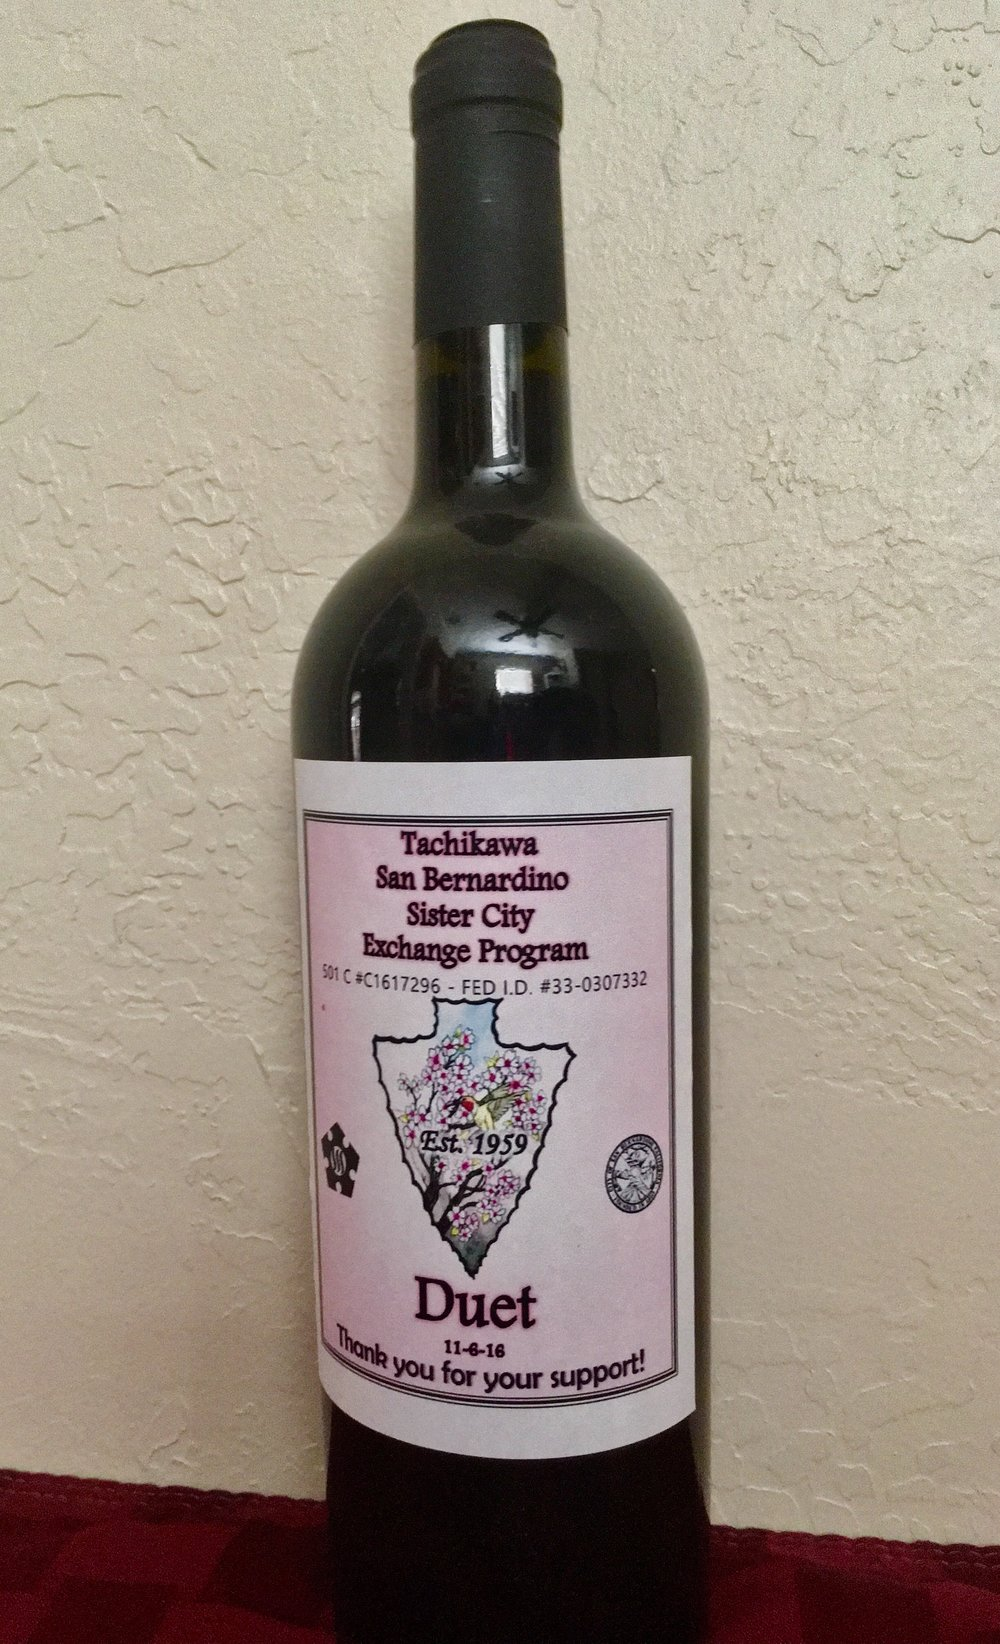 Wine Bottle from our first Wine Tasting in 2016.